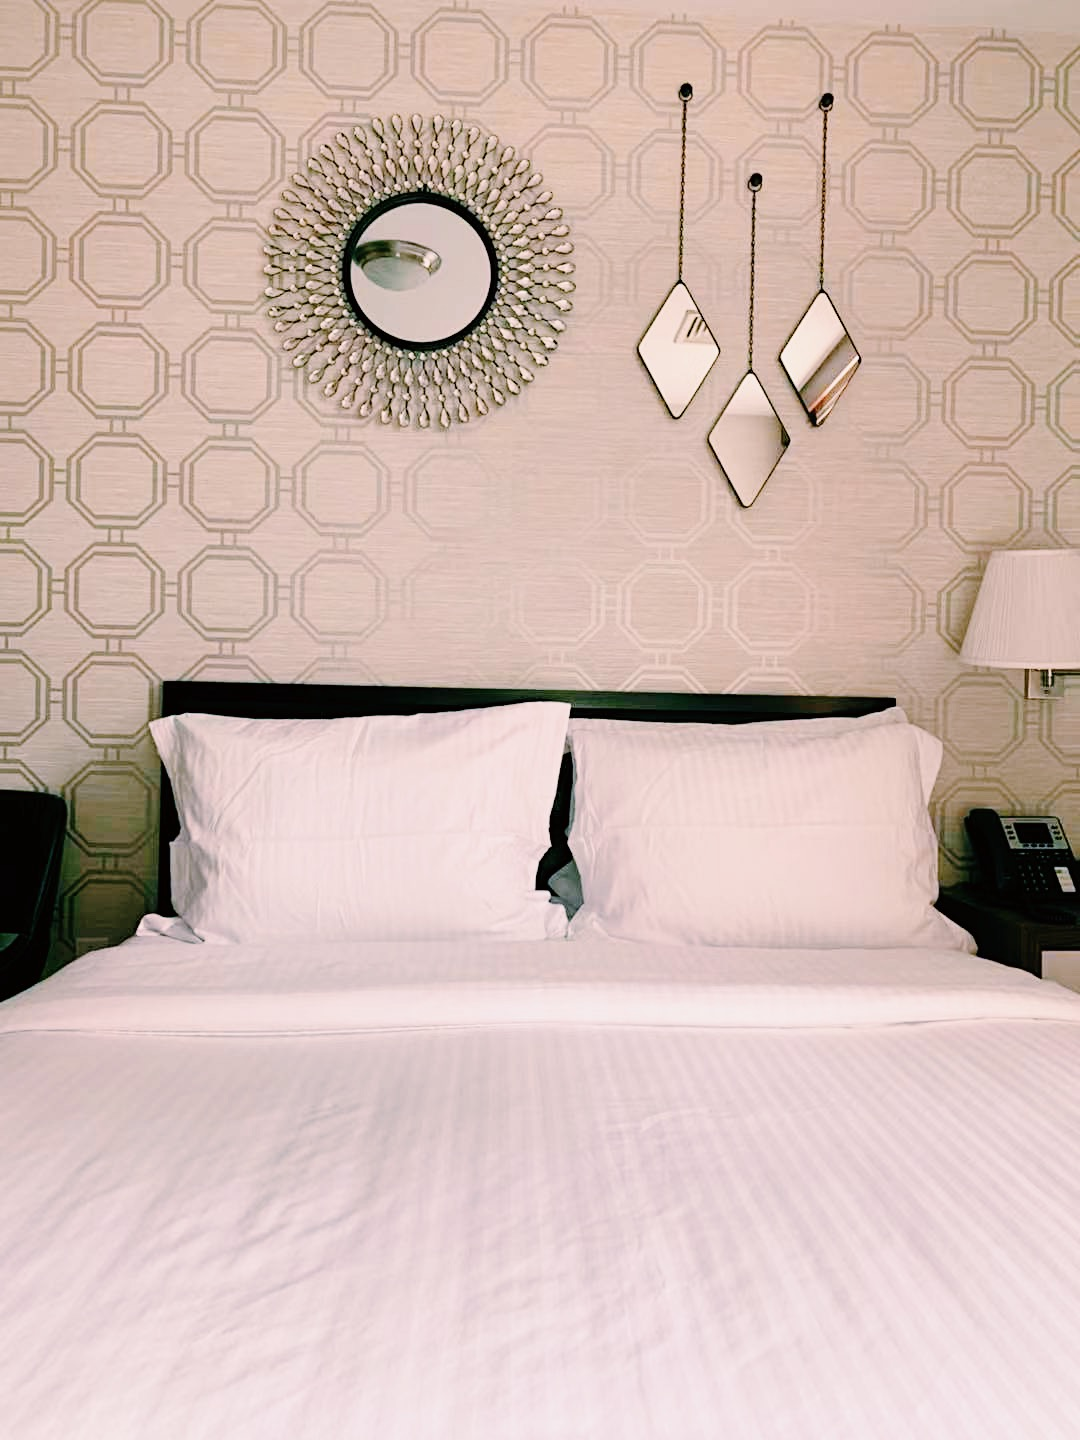 Our Standard Queen Room, both style and comfort!